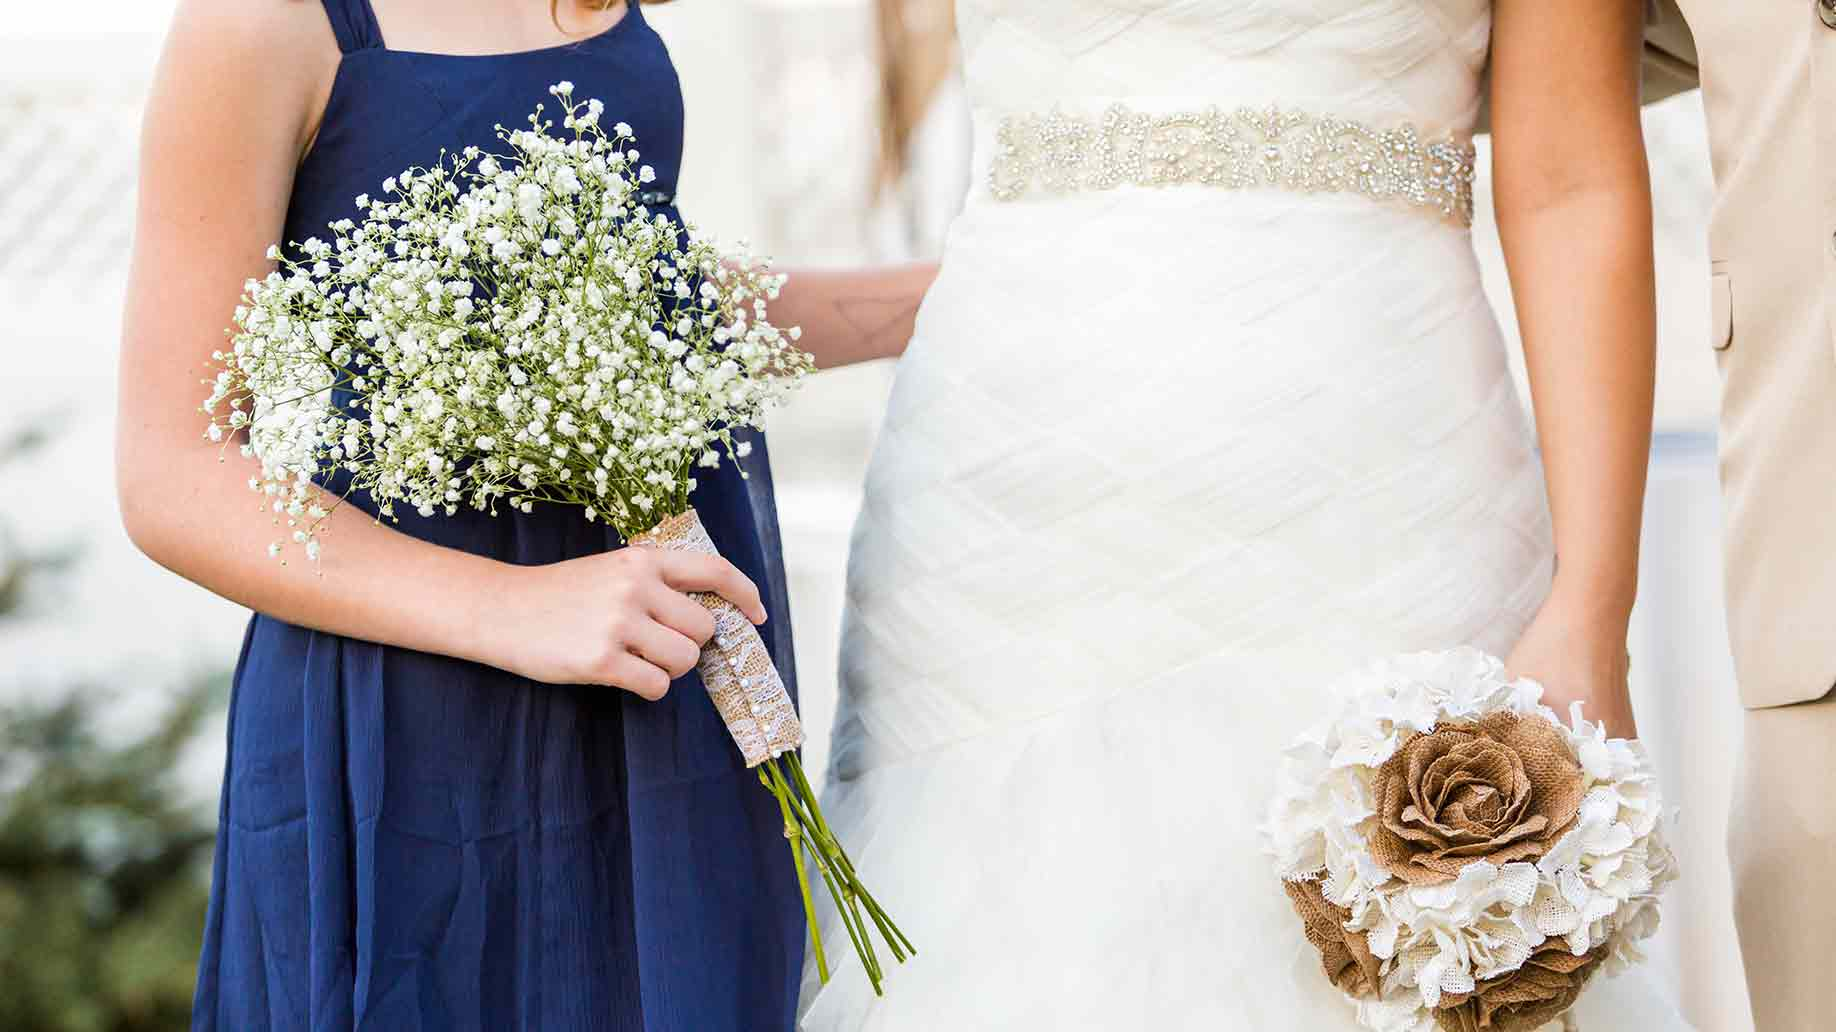 Planning a Wedding on a Budget - 15 Ideas to Get Married for Less